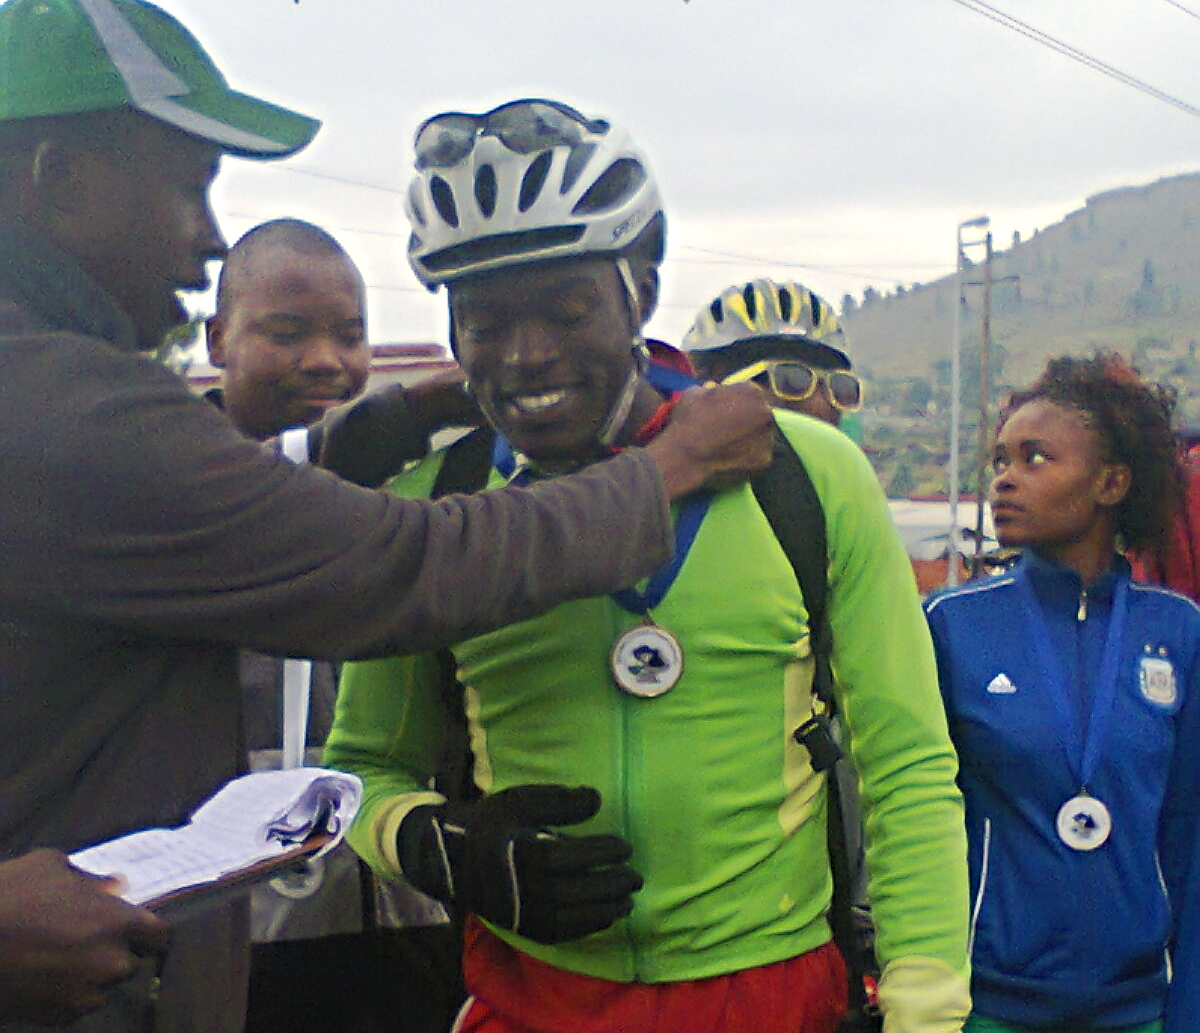 The National Champion, trained by Tumi himself.